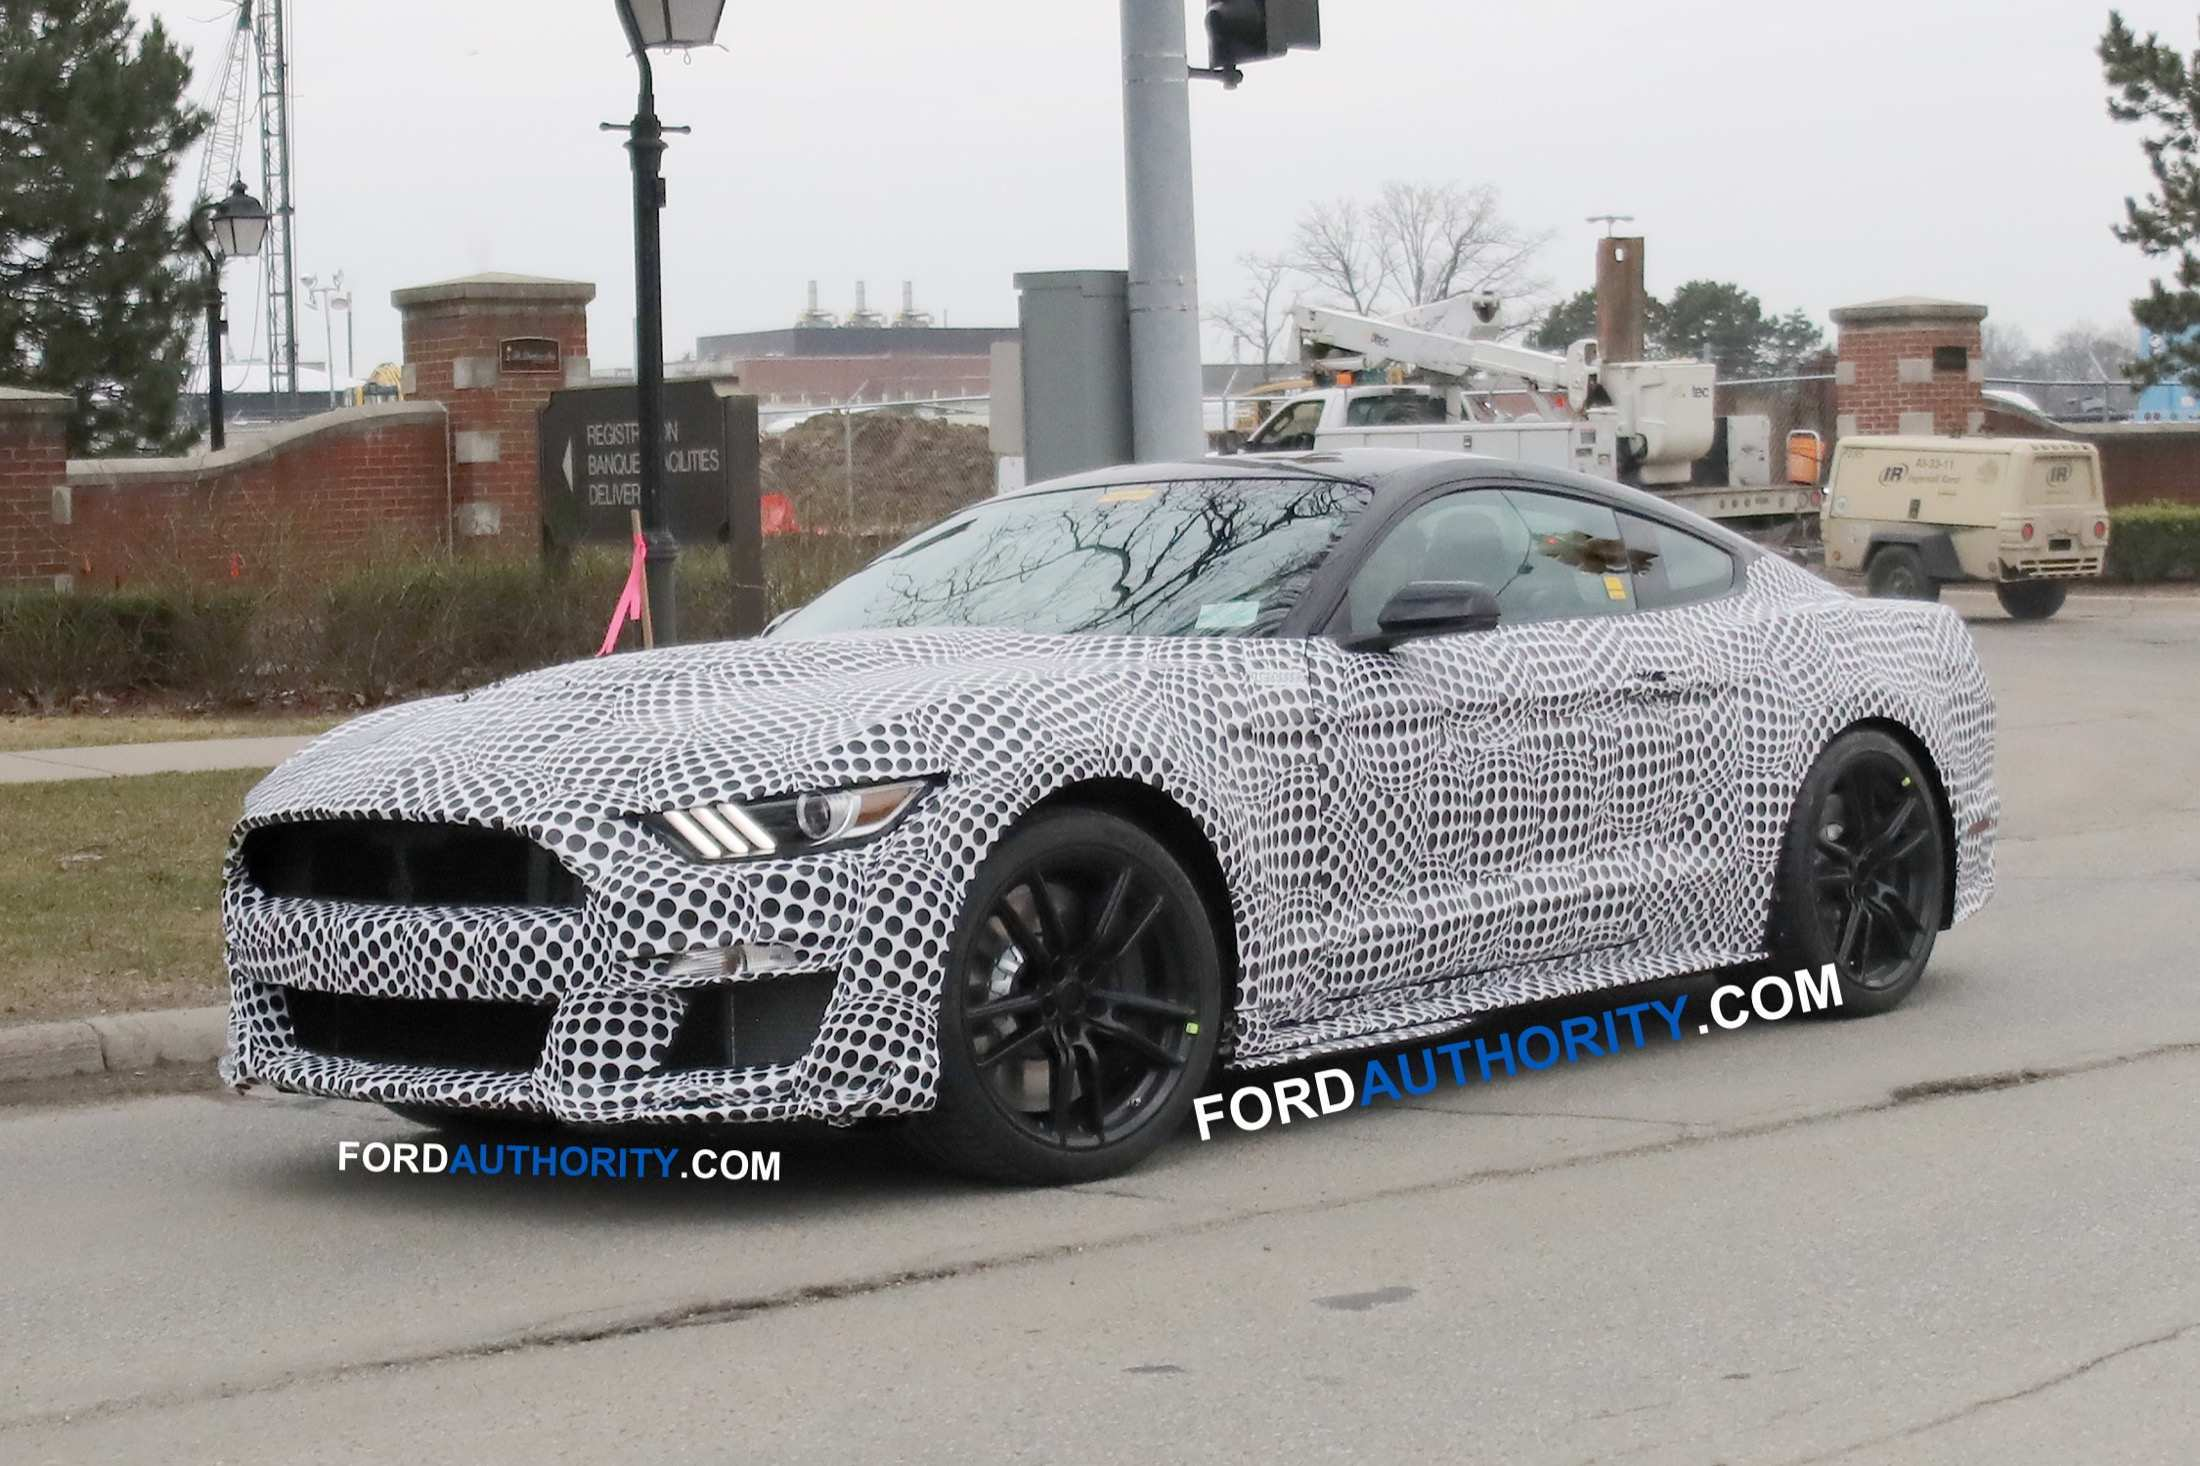 46 New 2020 Ford Mustang Images Interior for 2020 Ford Mustang Images